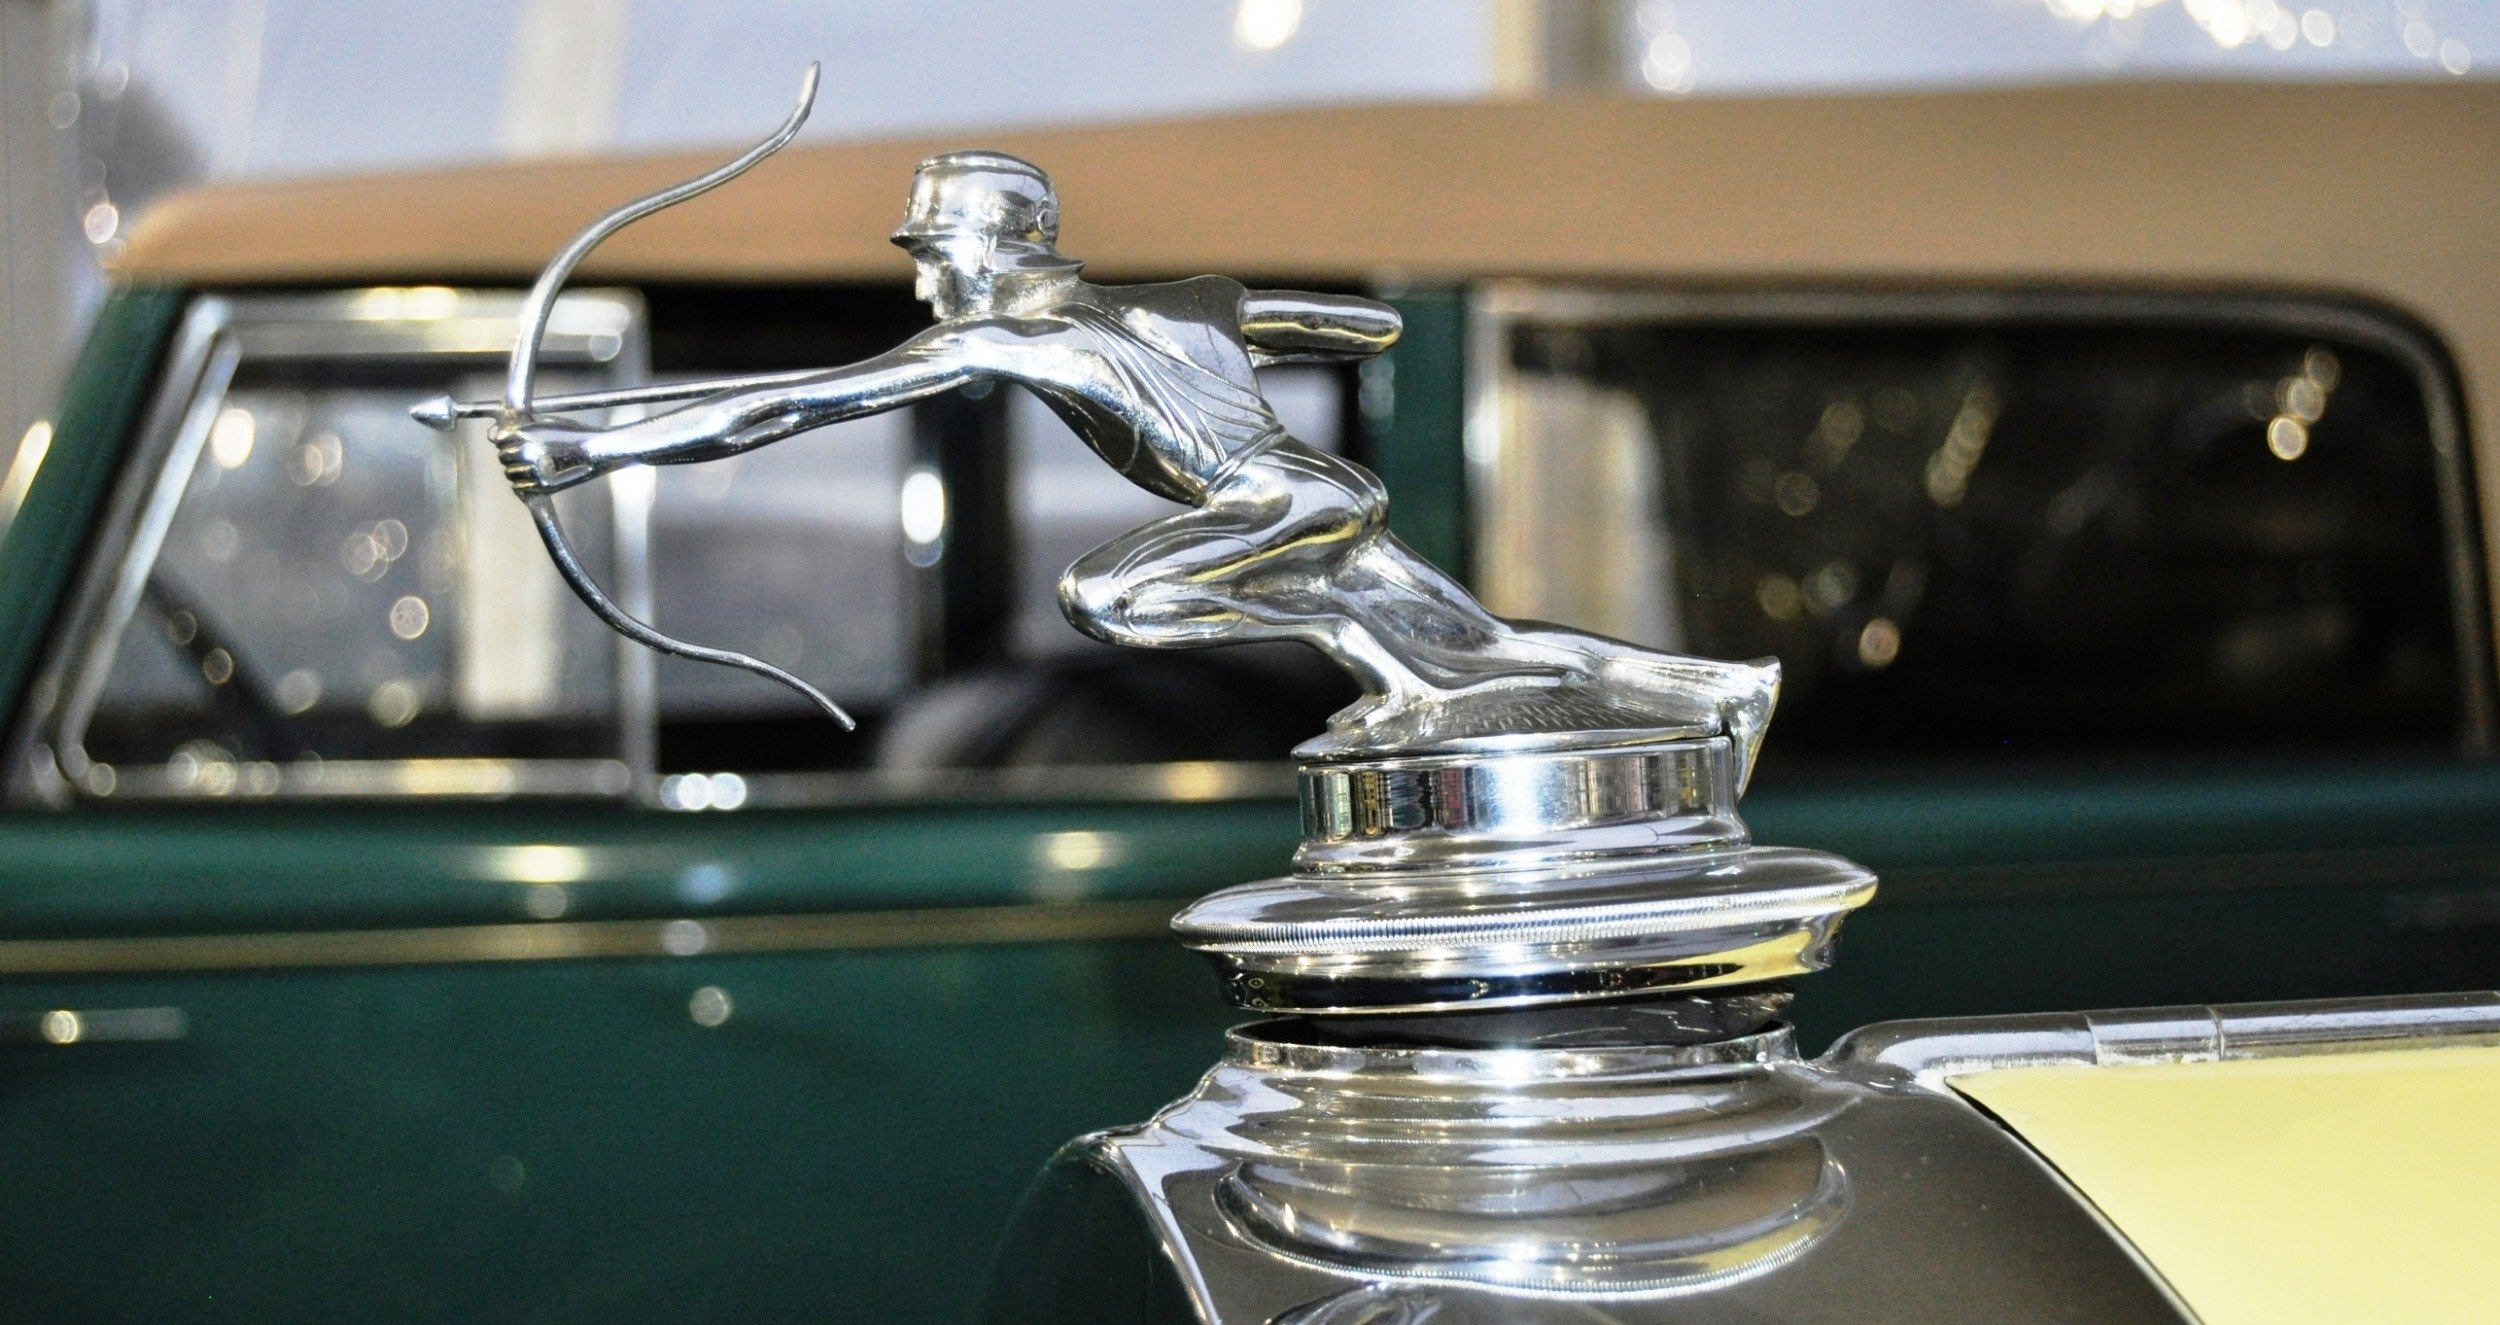 Coolest Vintage Hood Ornaments -- RM Auctions Amelia Island 2014 -- Pierce-Arrow, Cadillac, Stutz, Chrysler, Ford, Aston-Martin, Bentley and More 14